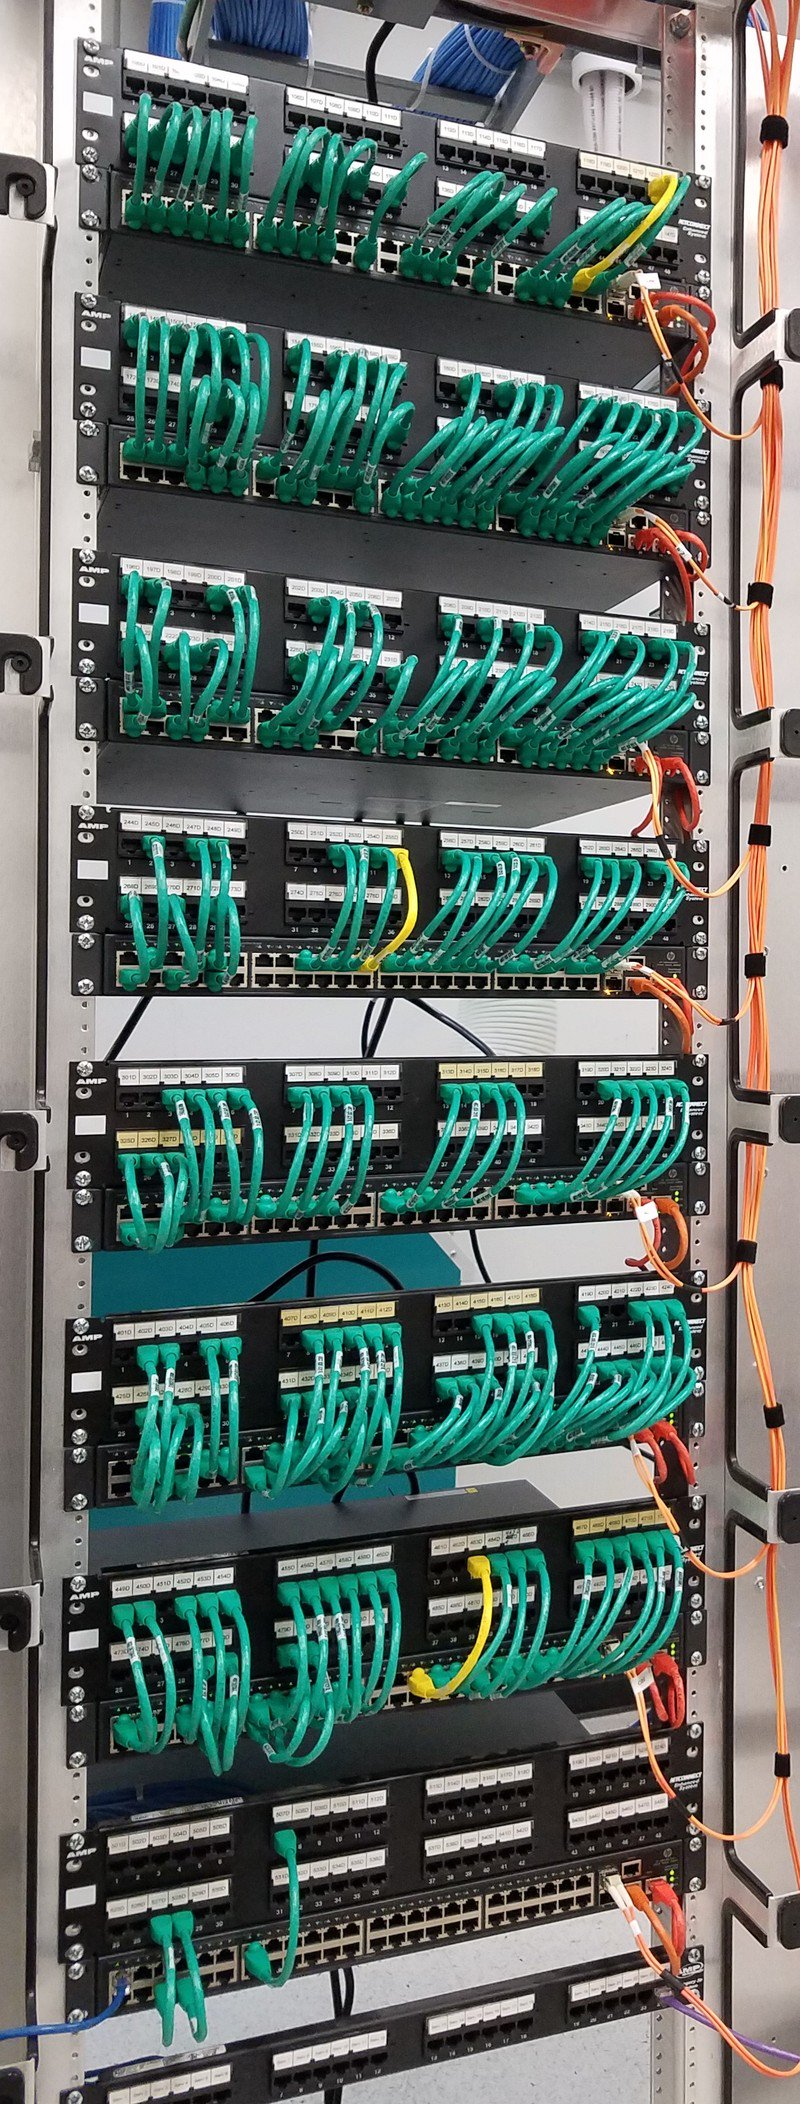 hight resolution of wiring a network rack wiring diagram data val wiring a network rack